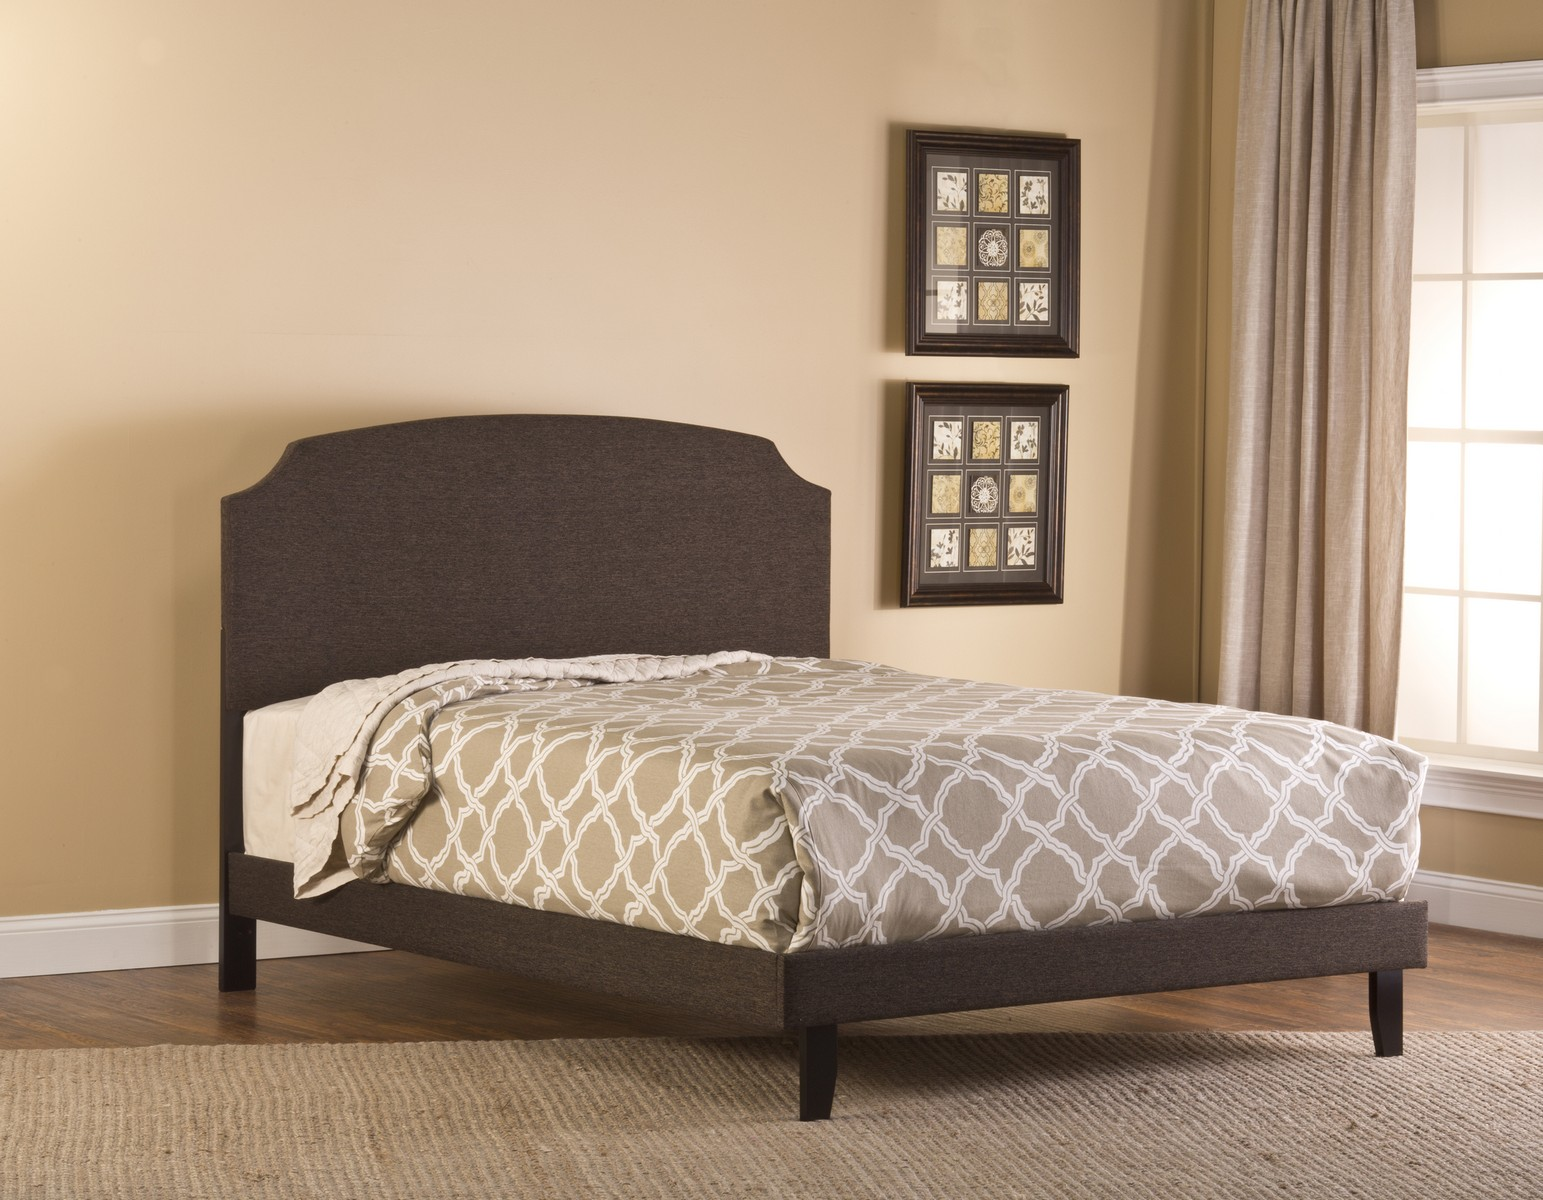 Hillsdale Lawler Bed - Black/Brown Fabric